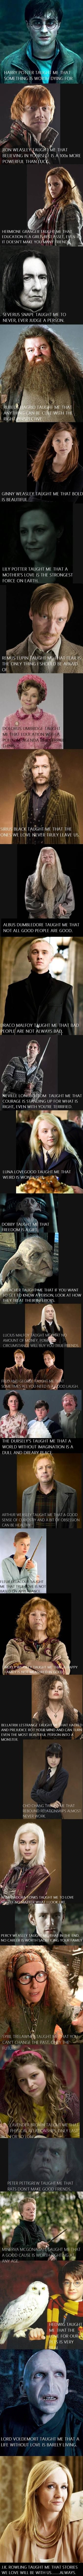 Lessons in Harry Potter; LOVE this!  And I've always liked Professor Snape from the beginning of the series! ;)